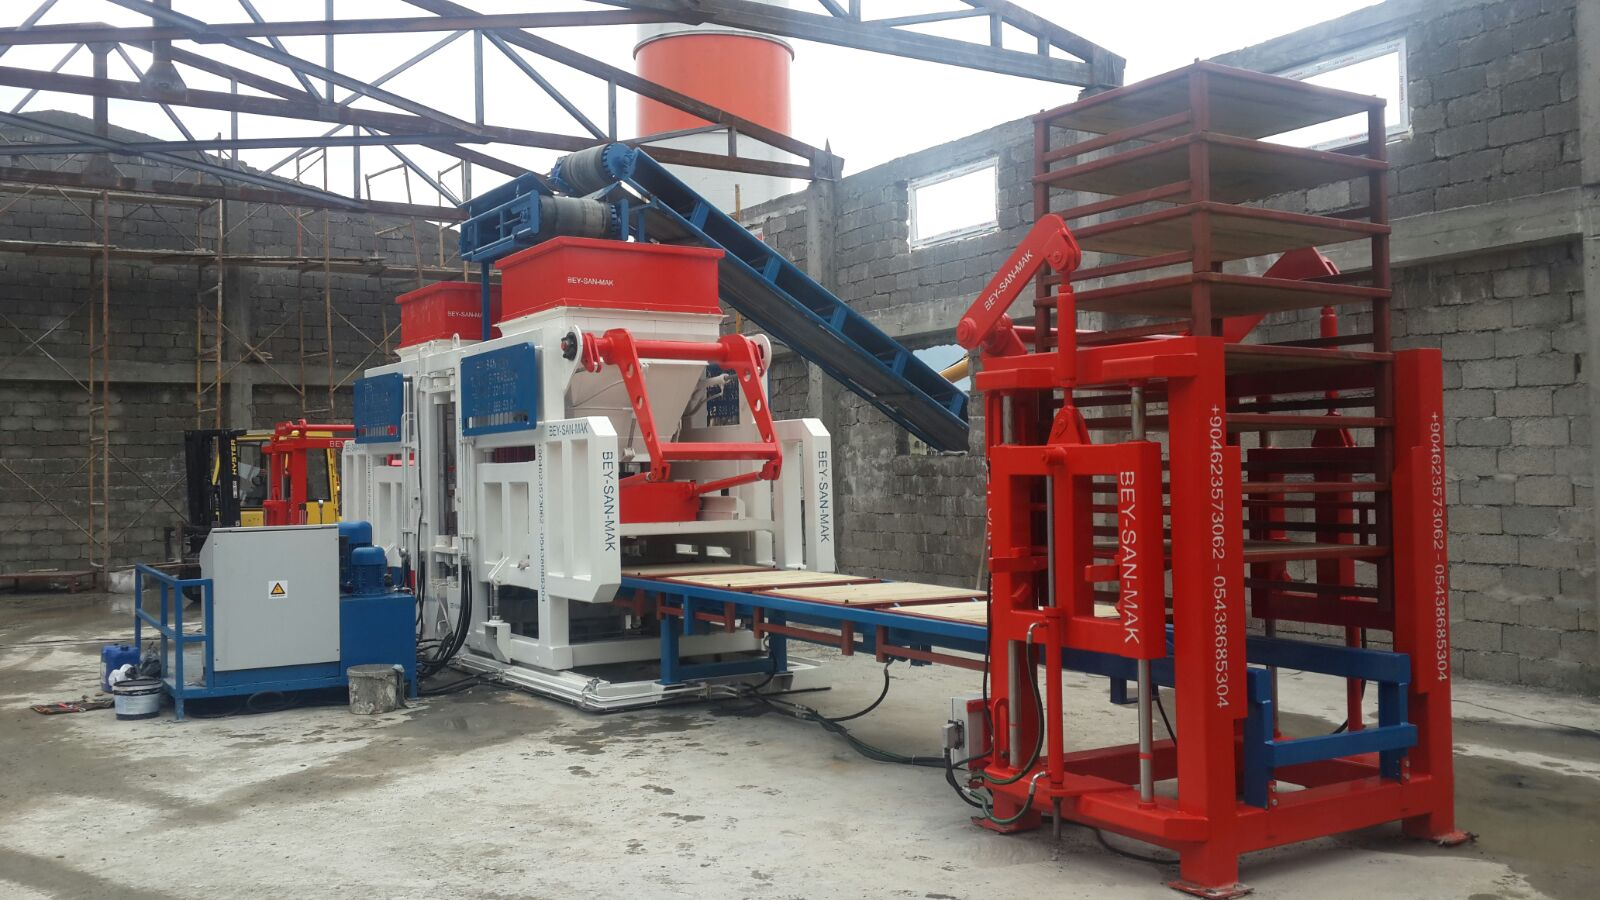 Automatic-Paving-Block-Making-Plant.jpg